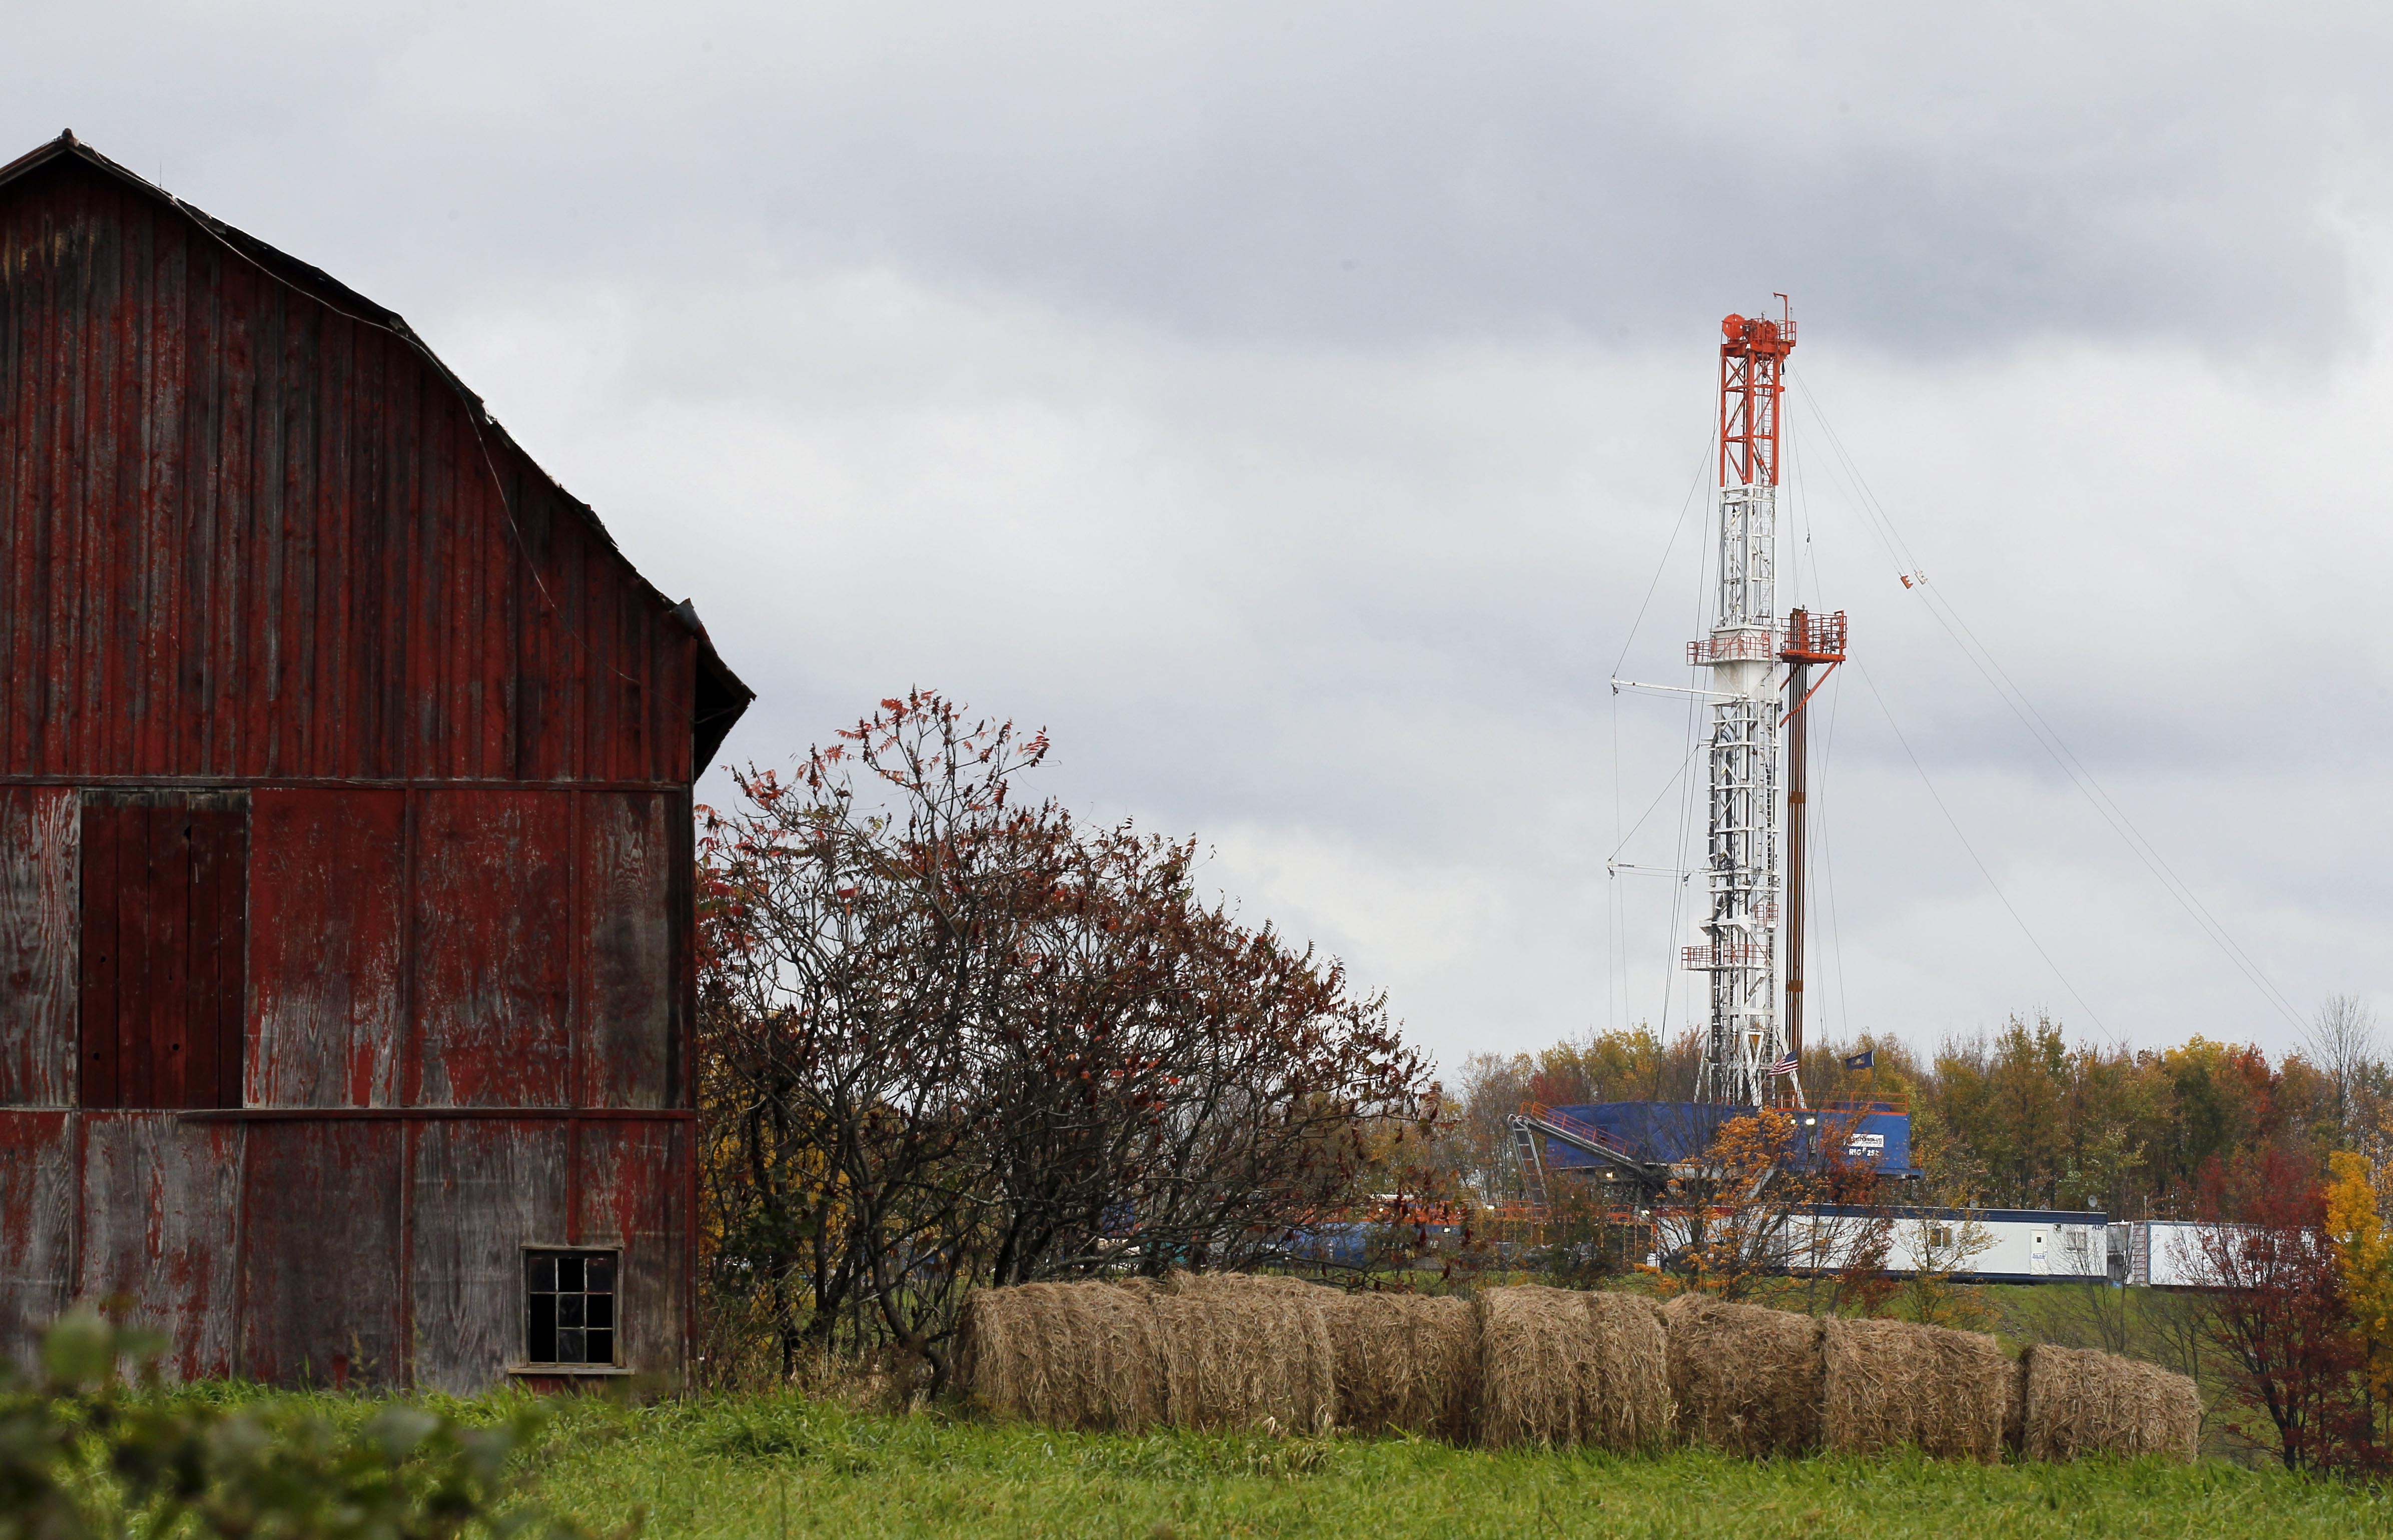 A drilling rig is set up near a barn in Springville, Pa., to tap gas from the giant Marcellus Shale gas field. (AP Photo/Alex Brandon, File)